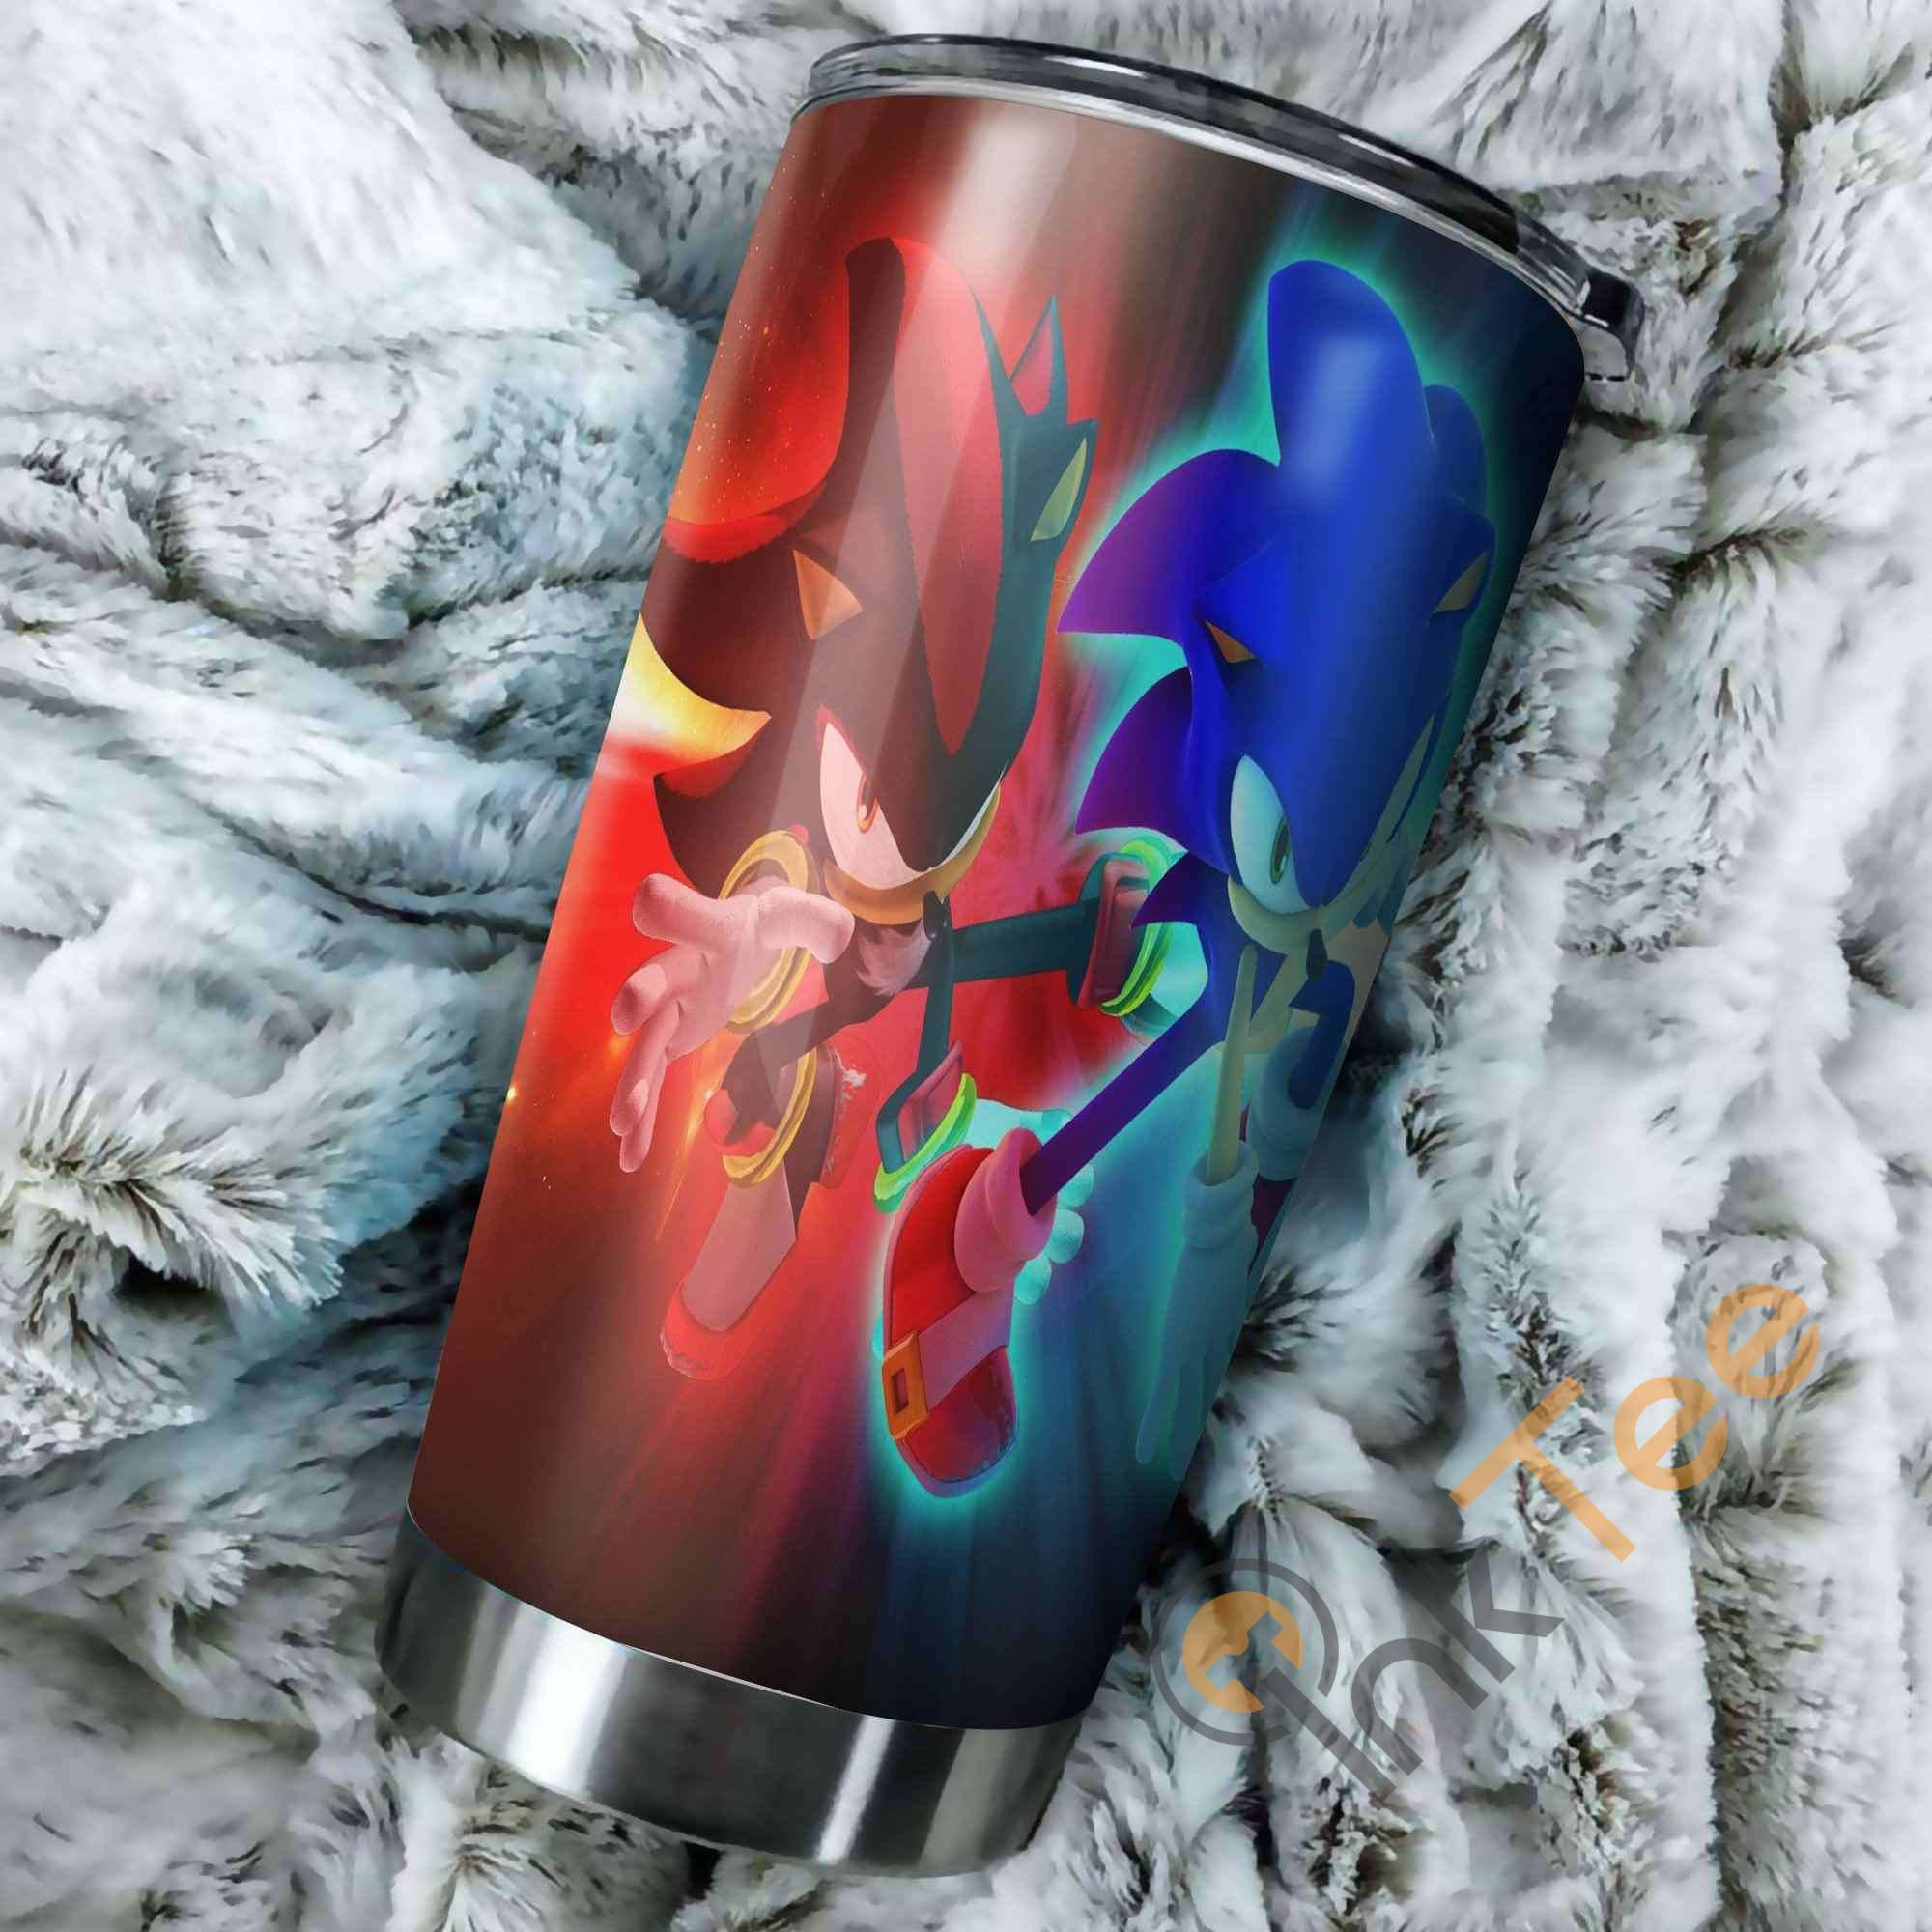 Sonic The Hedgehog Red And Blue Perfect Gift Stainless Steel Tumbler